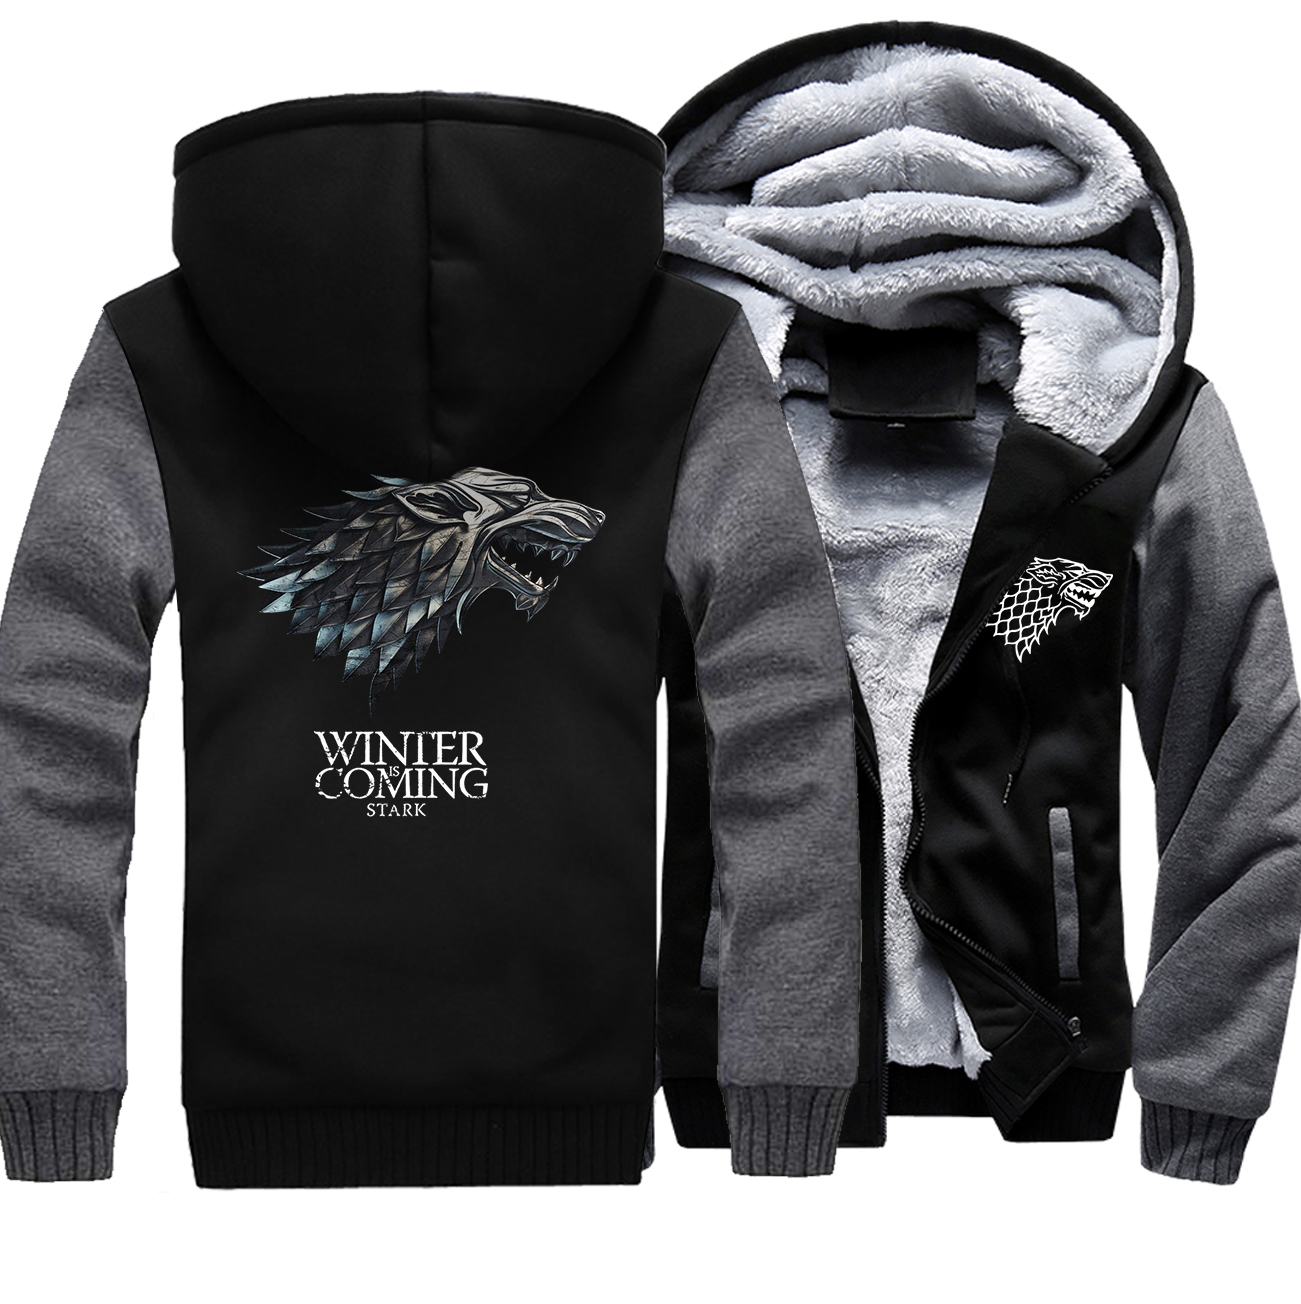 Hot Sale Men Clothing 2018 Fashion Winter Warm Thick Hoodies Male Hipter Game Of Thrones Anime Sweatshirt High Quality Tracksuit